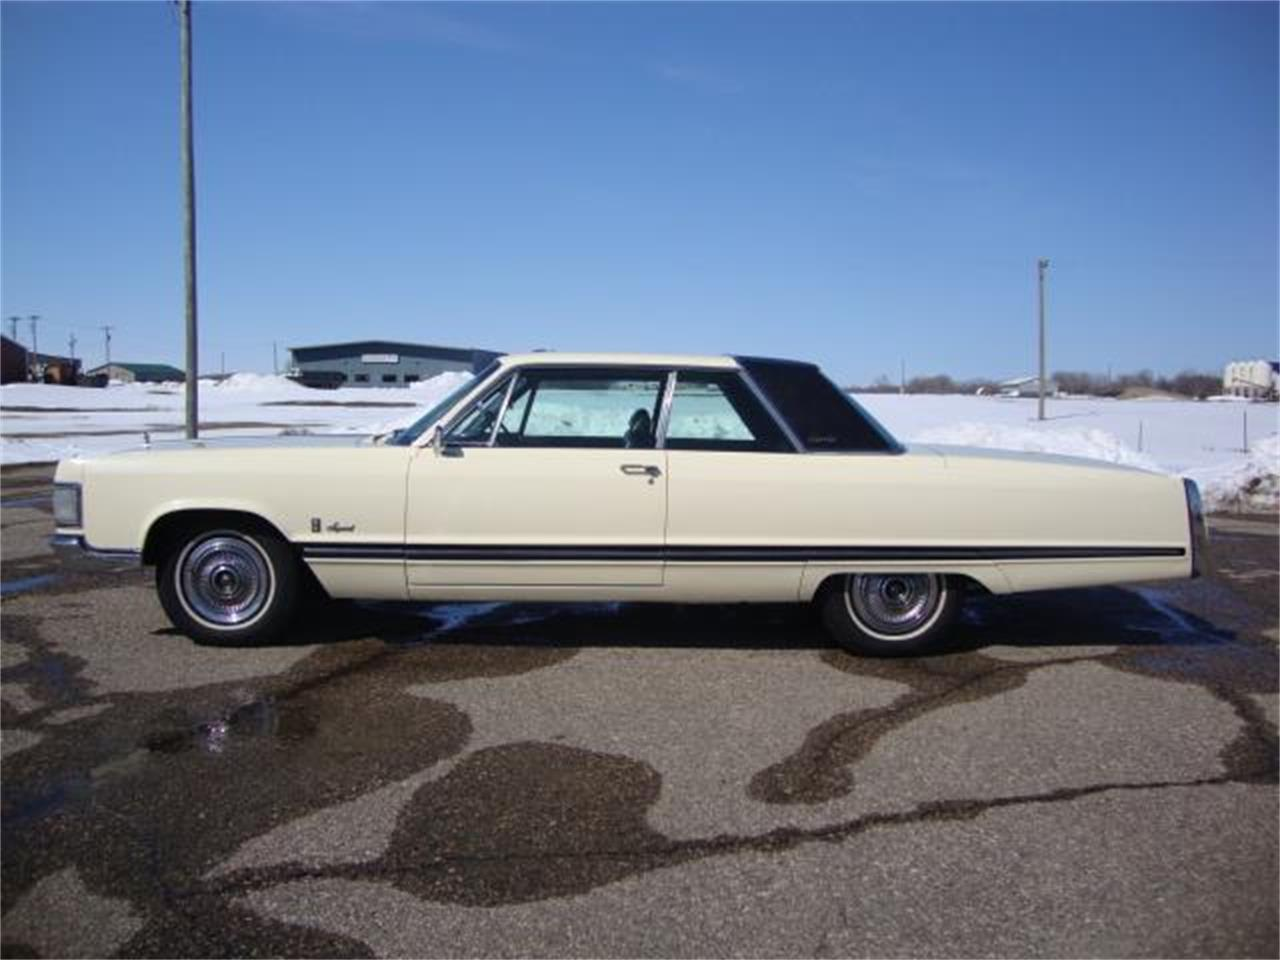 1967 Chrysler Imperial For Sale In Milbank Sd Classiccarsbay Com